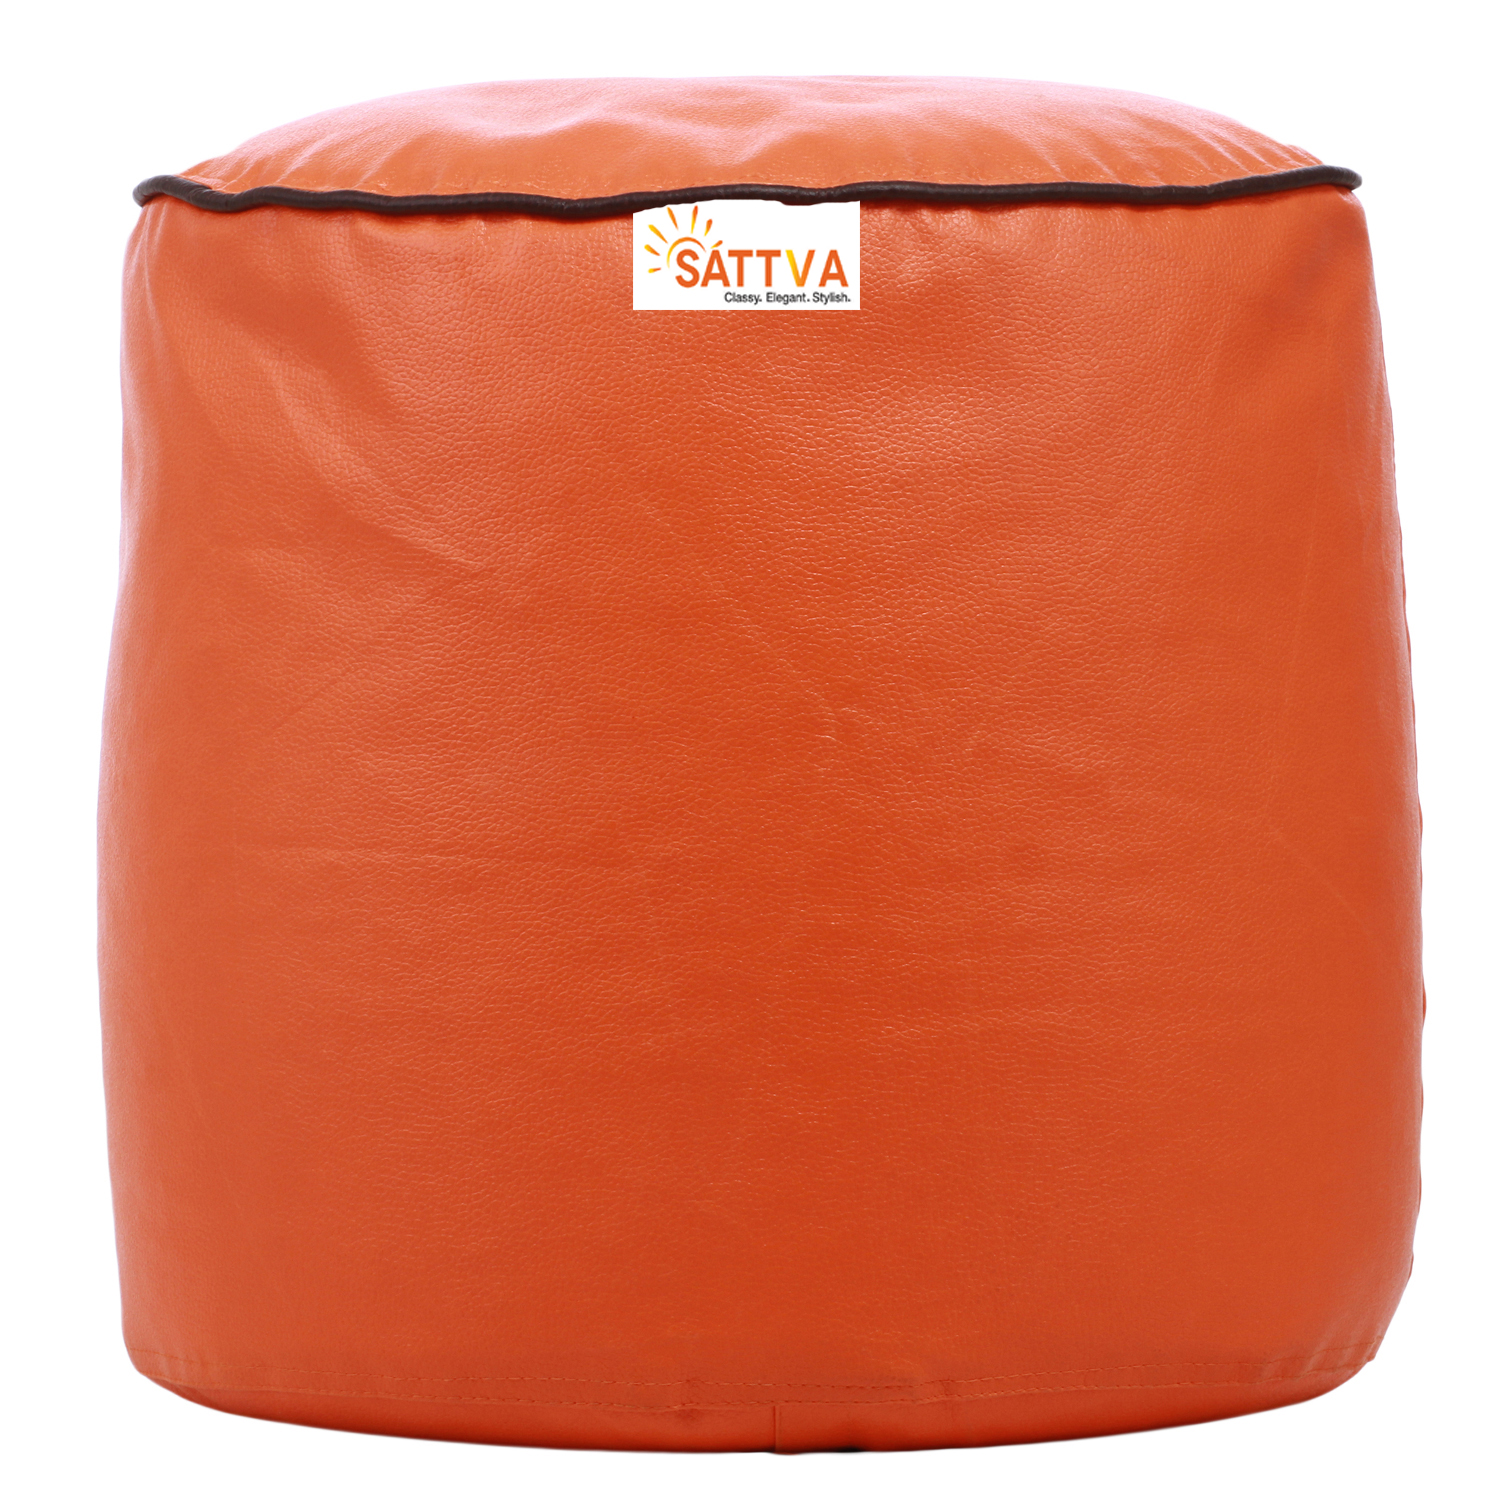 Sattva Combo Classic Bean Bag And Round Foostool-(Filled) Black With Pink Piping - XL (Orange with Brown Piping, XXXL)